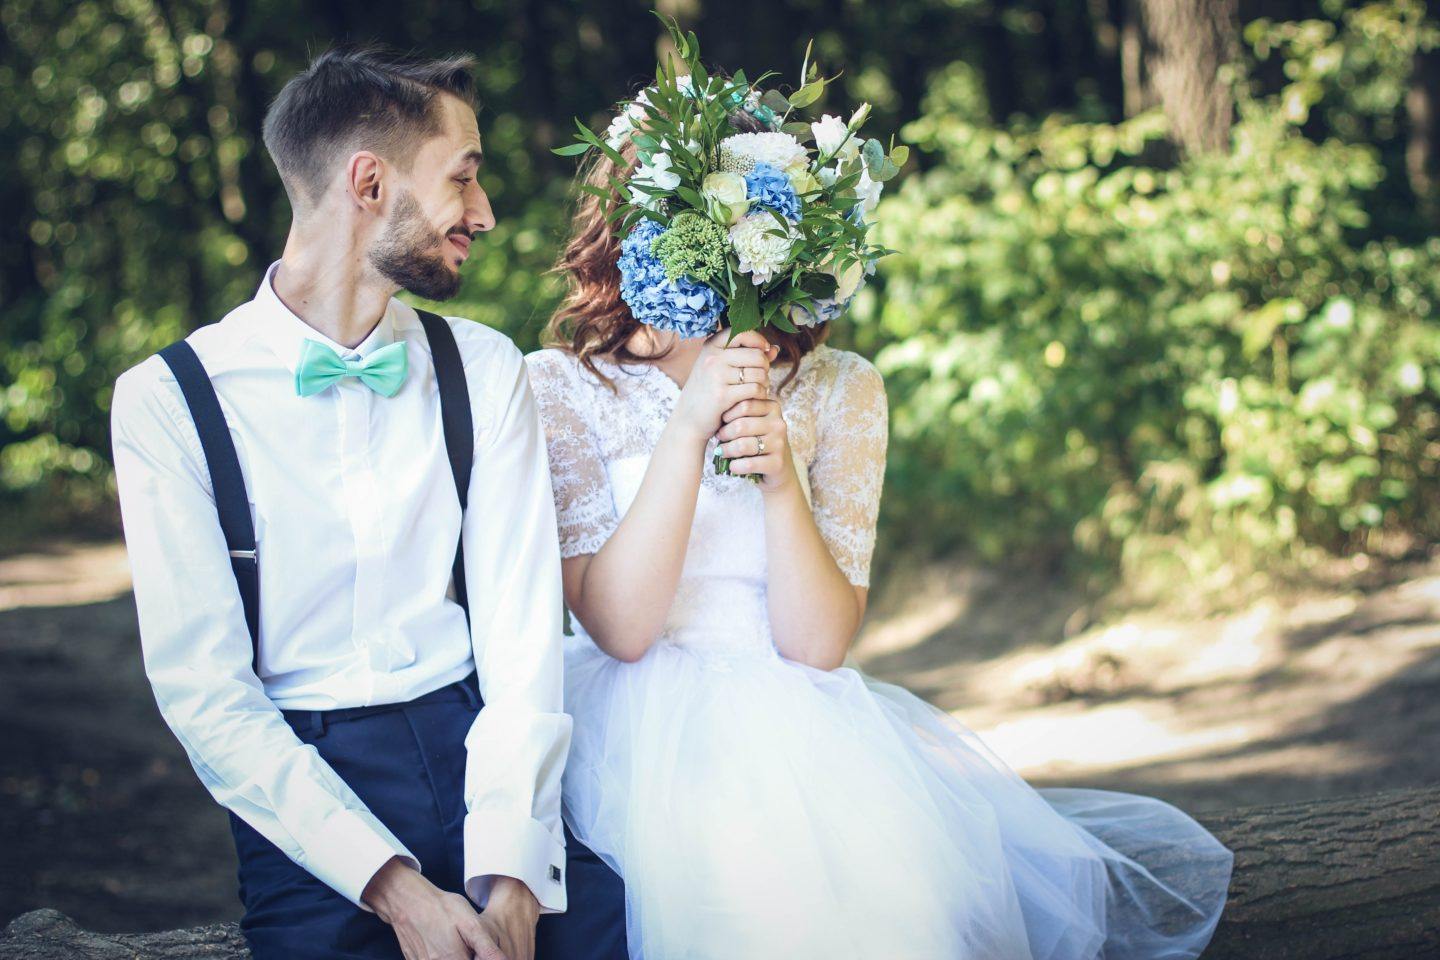 Planning Your Wedding With Optimism